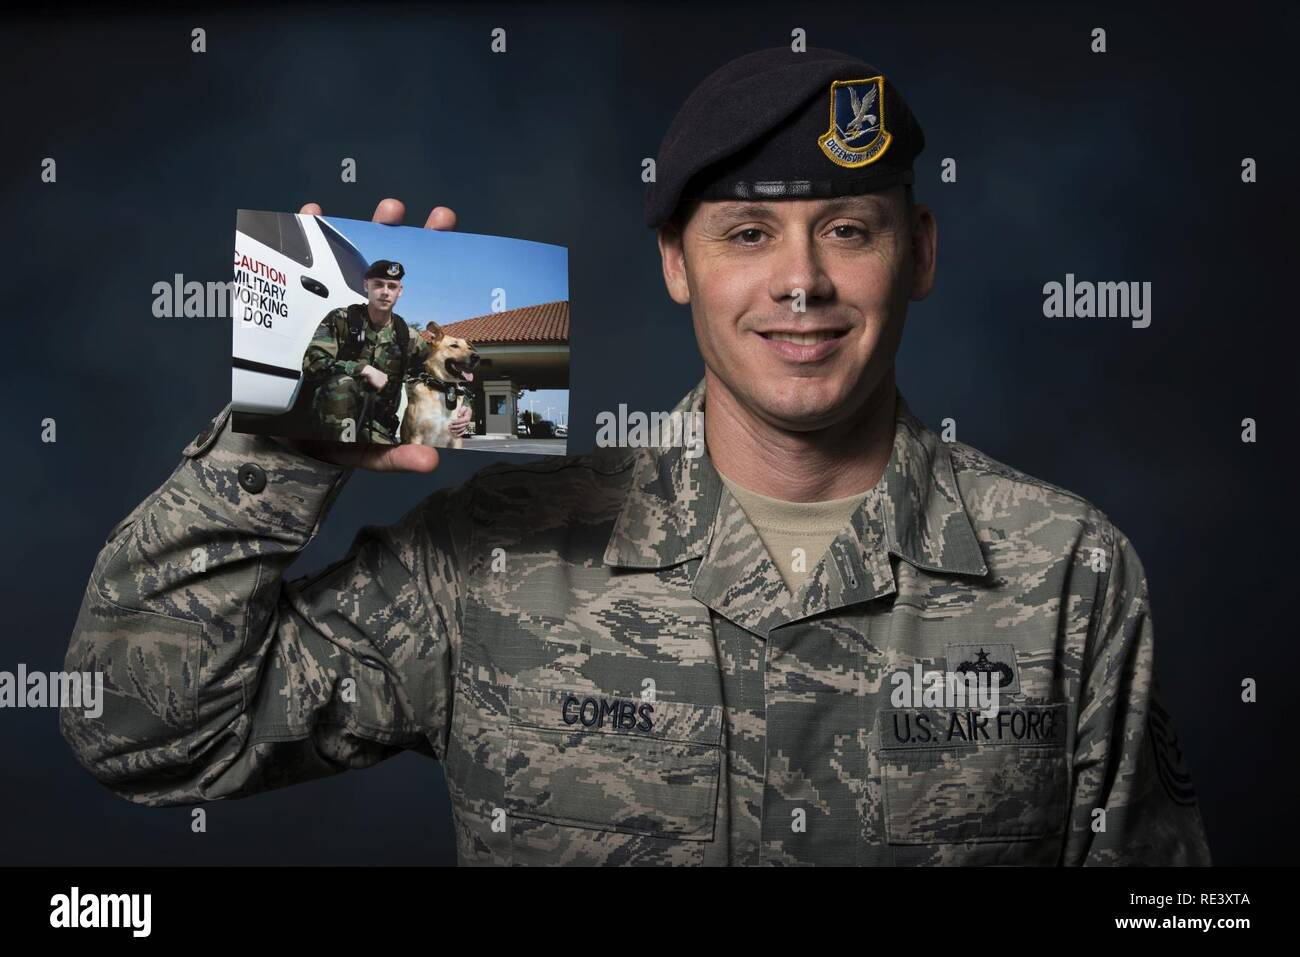 Tech. Sgt. Nathan Combs, 902nd Security Forces Squadron NCO in charge of resource protection, was diagnosed with testicular cancer in 2005 while serving as a military working dog handler at Joint Base San Antonio Randolph. Combs was notified in spring 2015 that he was considered cancer-free. Stock Photo